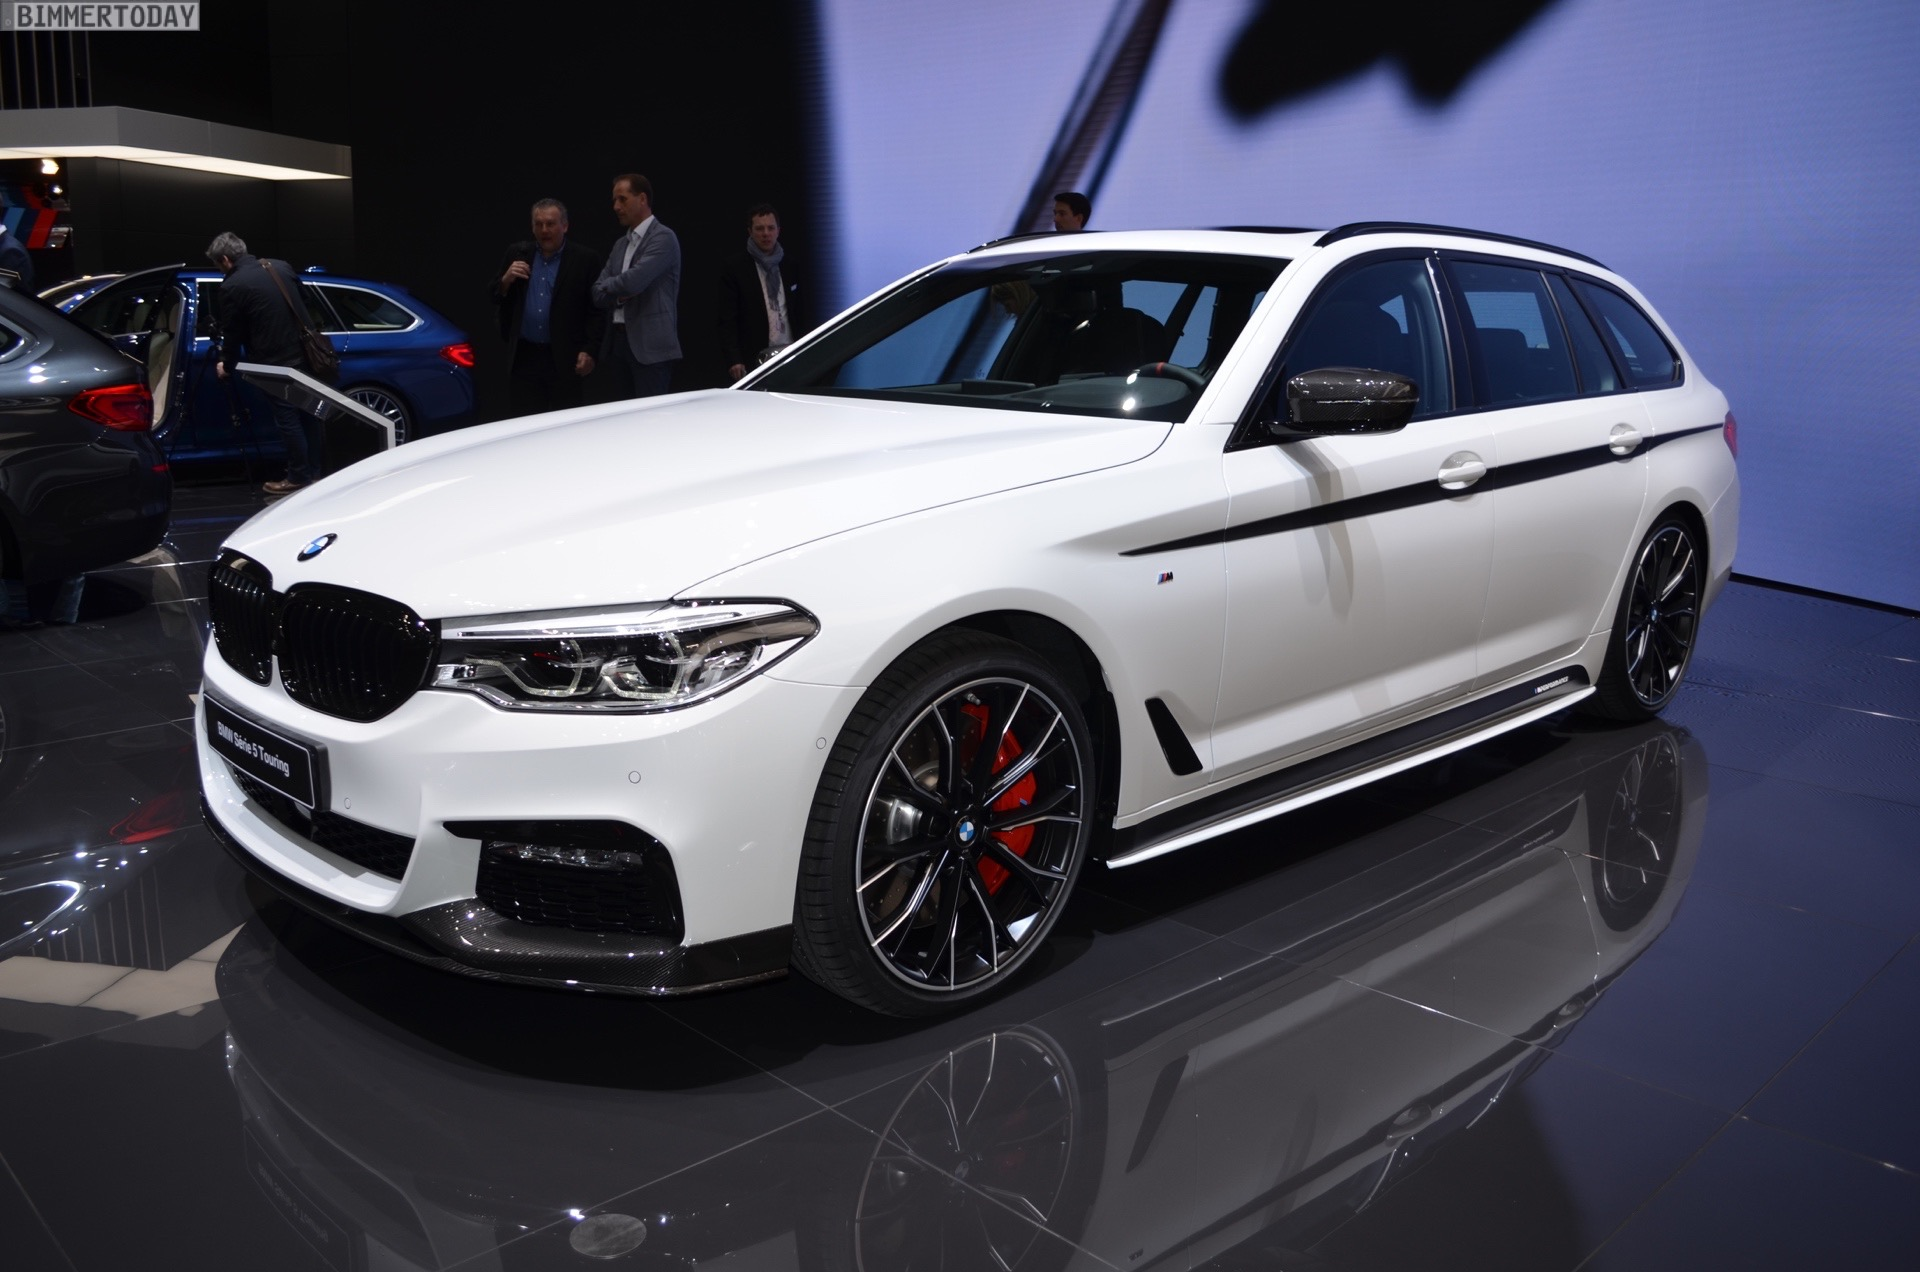 2017 Geneva Bmw 5 Series Touring Debuts With M Performance Parts